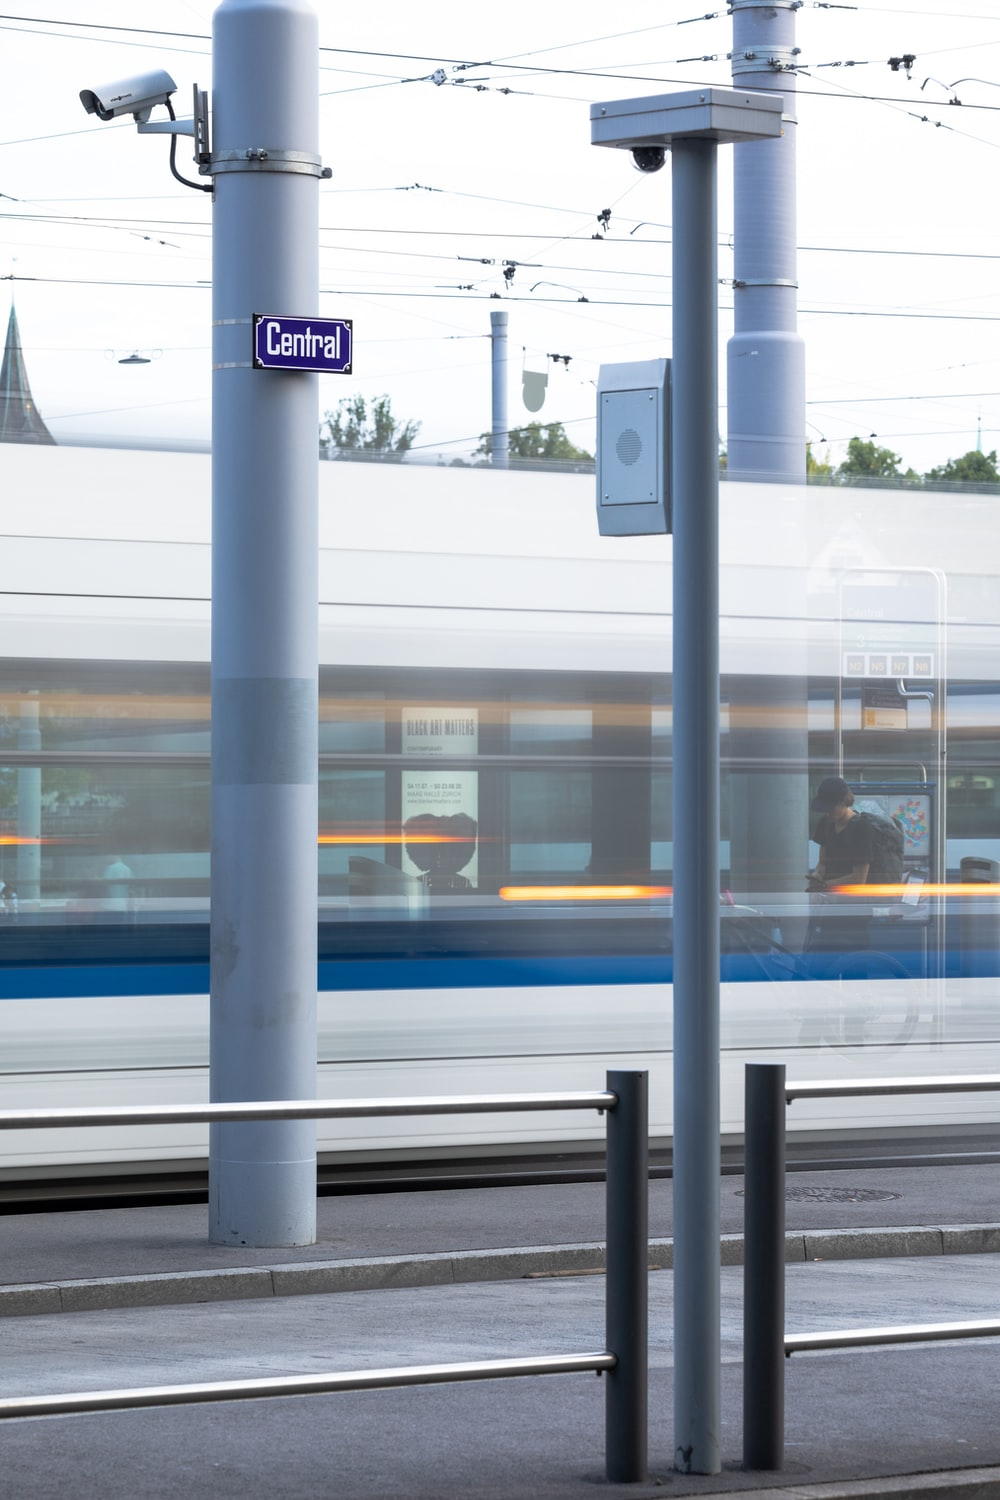 white and blue train on train station during daytime